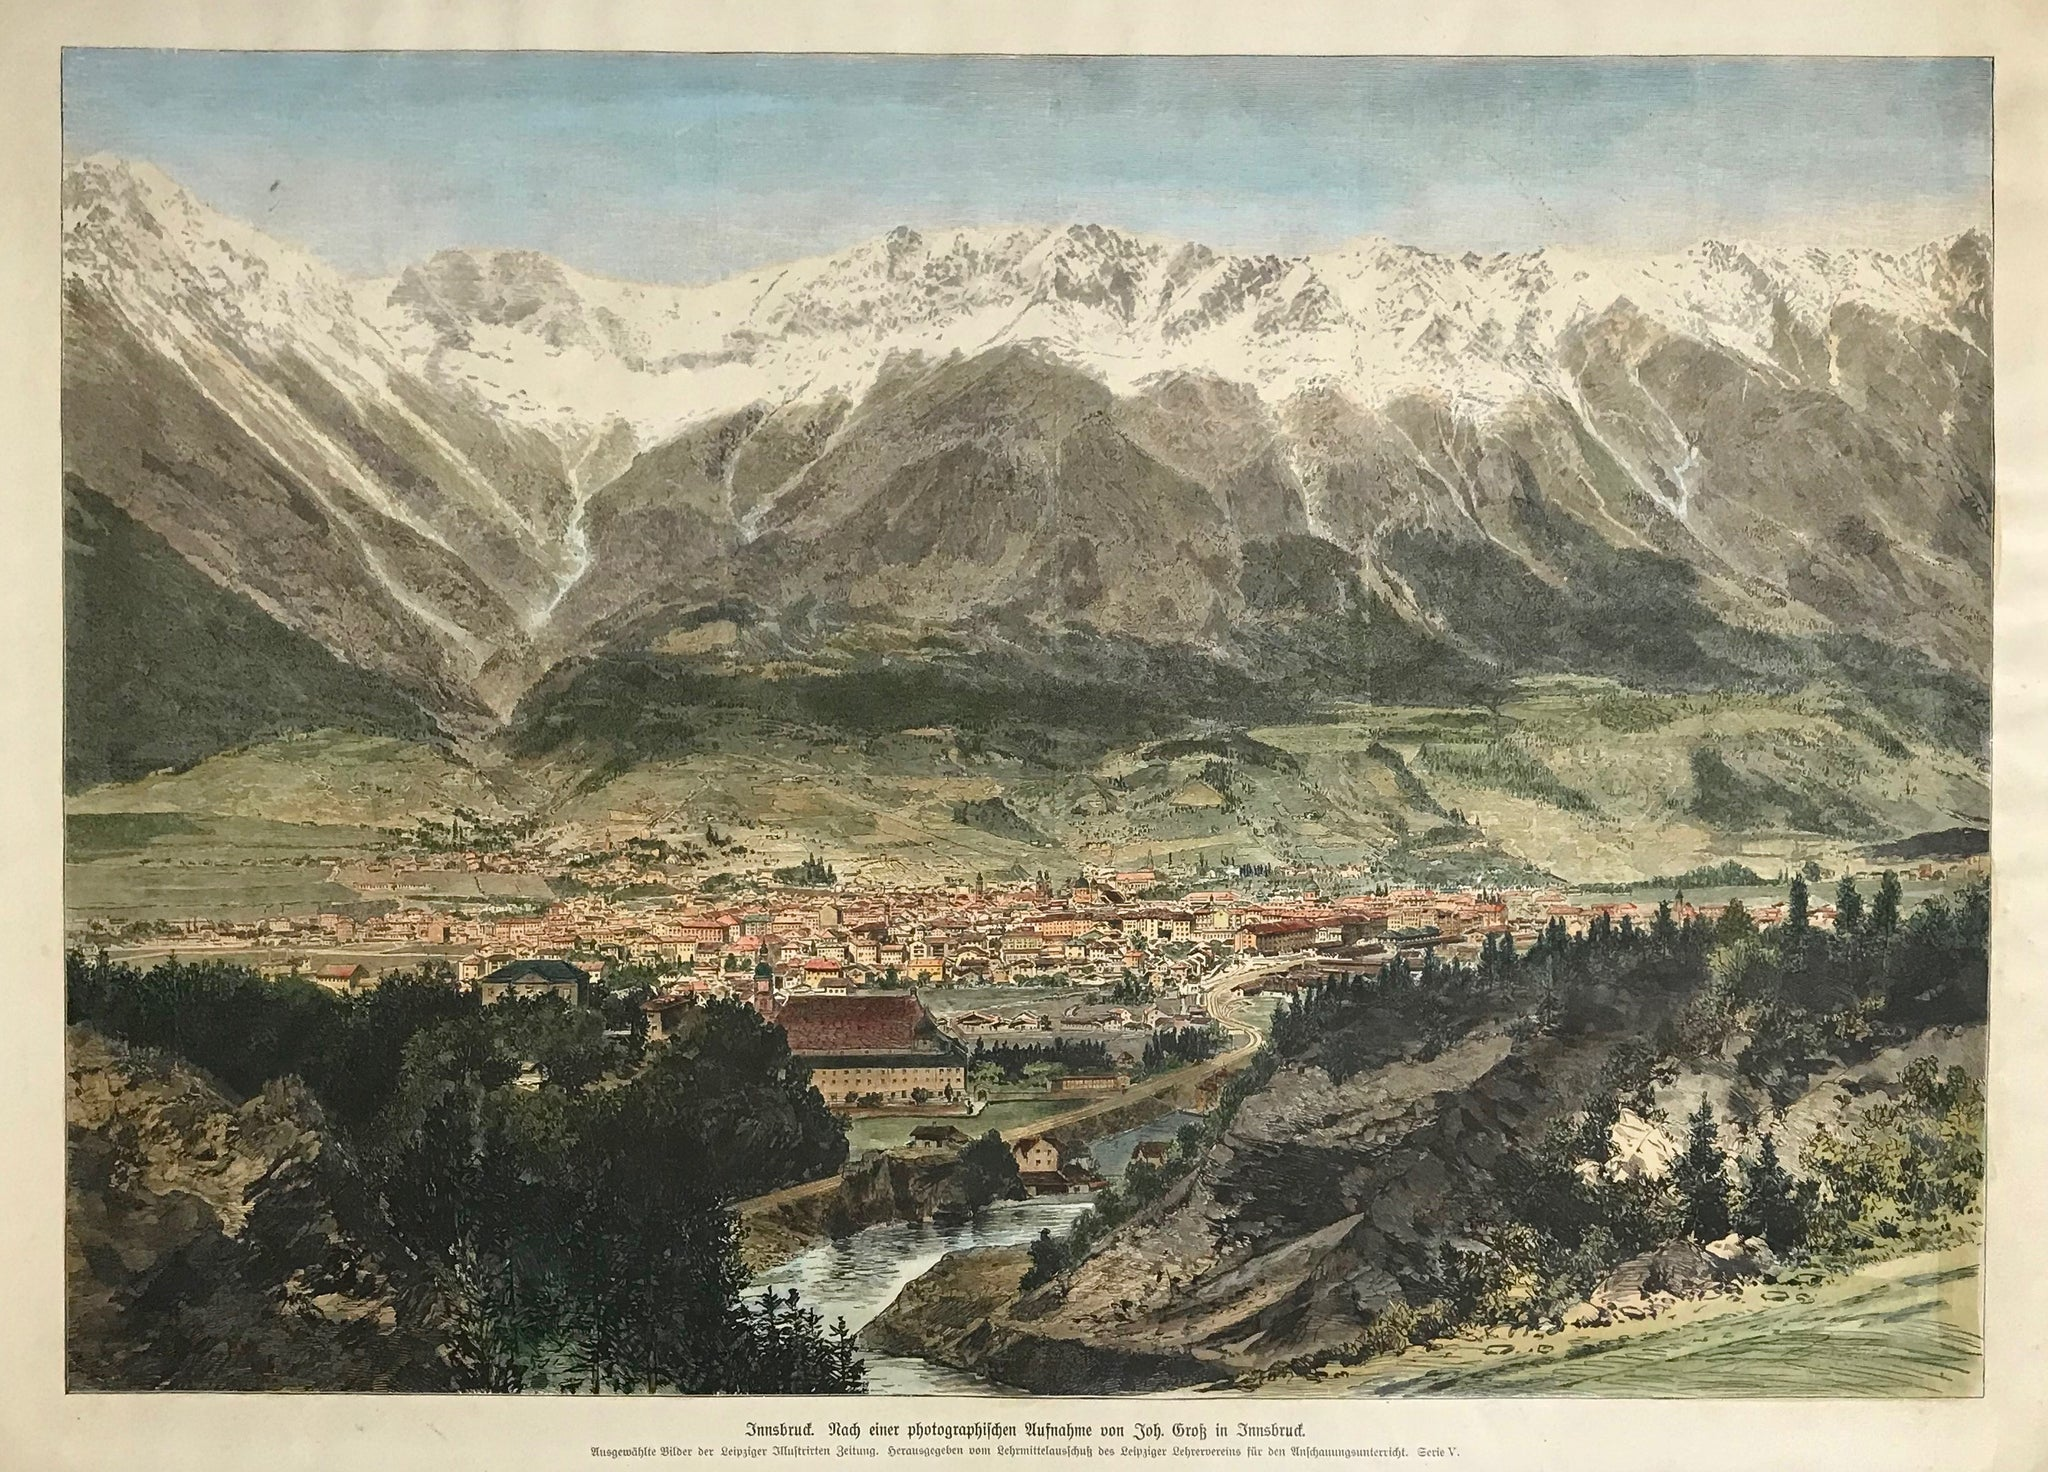 """Innsbruck"".  Wood engraving. After a photograph by Johann Gross. Recent hand coloring. Ca. 1890.  A very detailed general view from a bird's eye view against the backdrop of the snow-covered Alpine mountains."